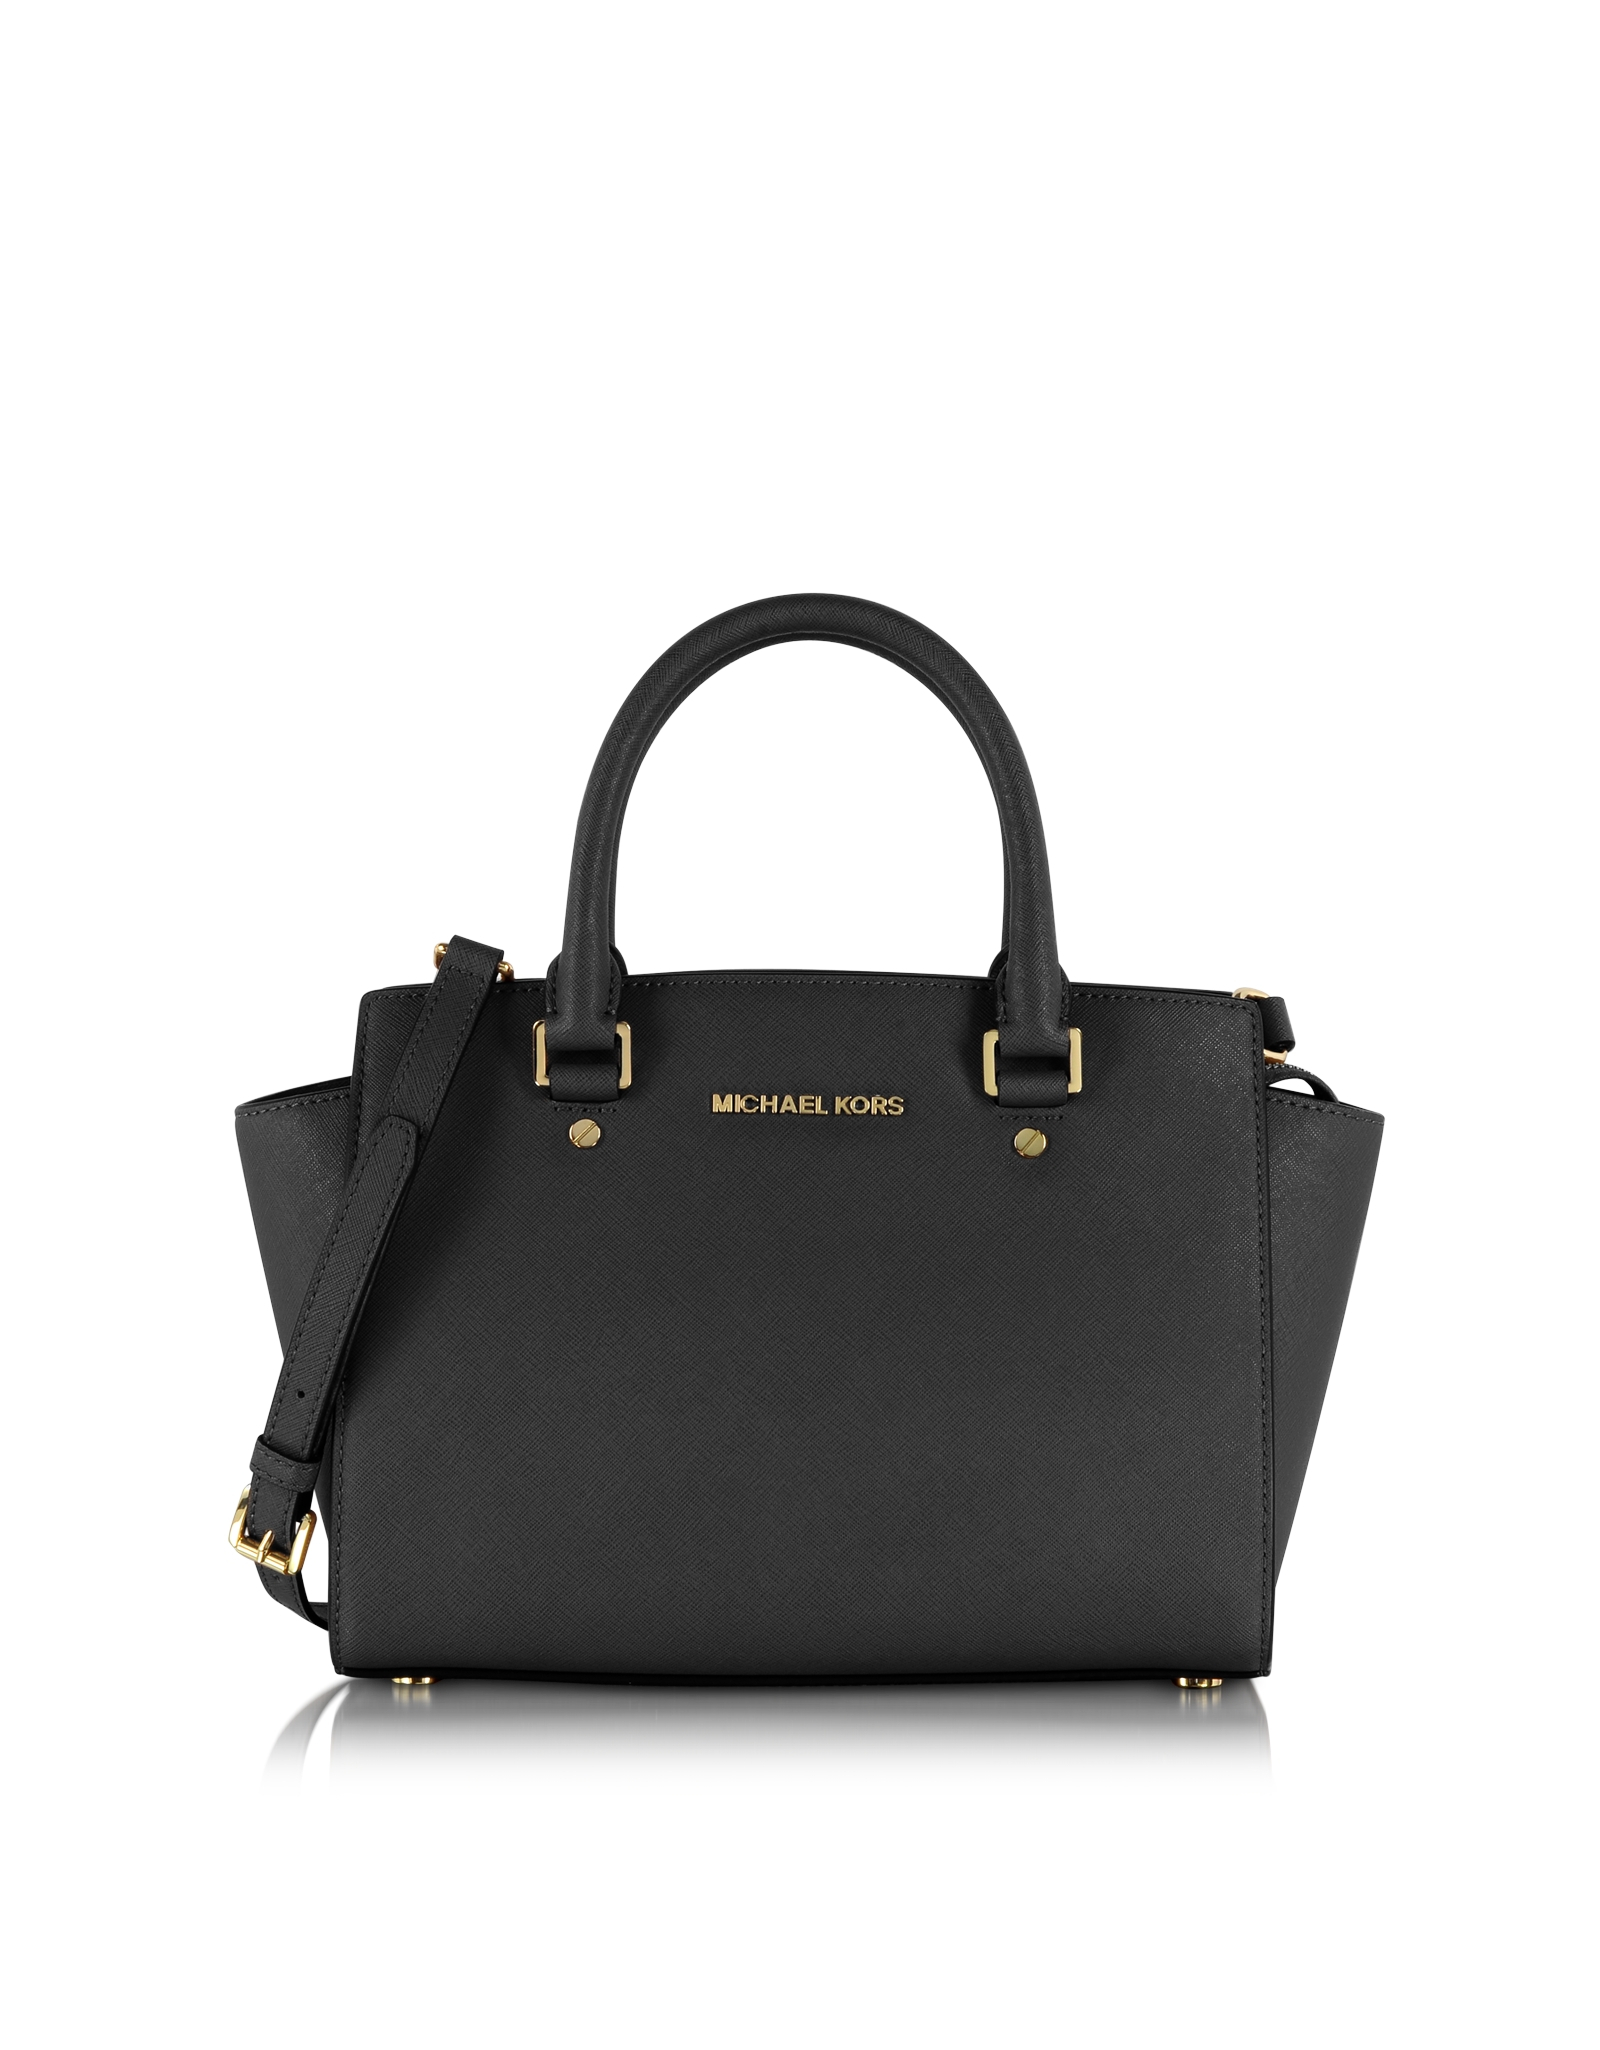 Michael kors Selma Medium Saffiano Leather Top-zip Satchel ...